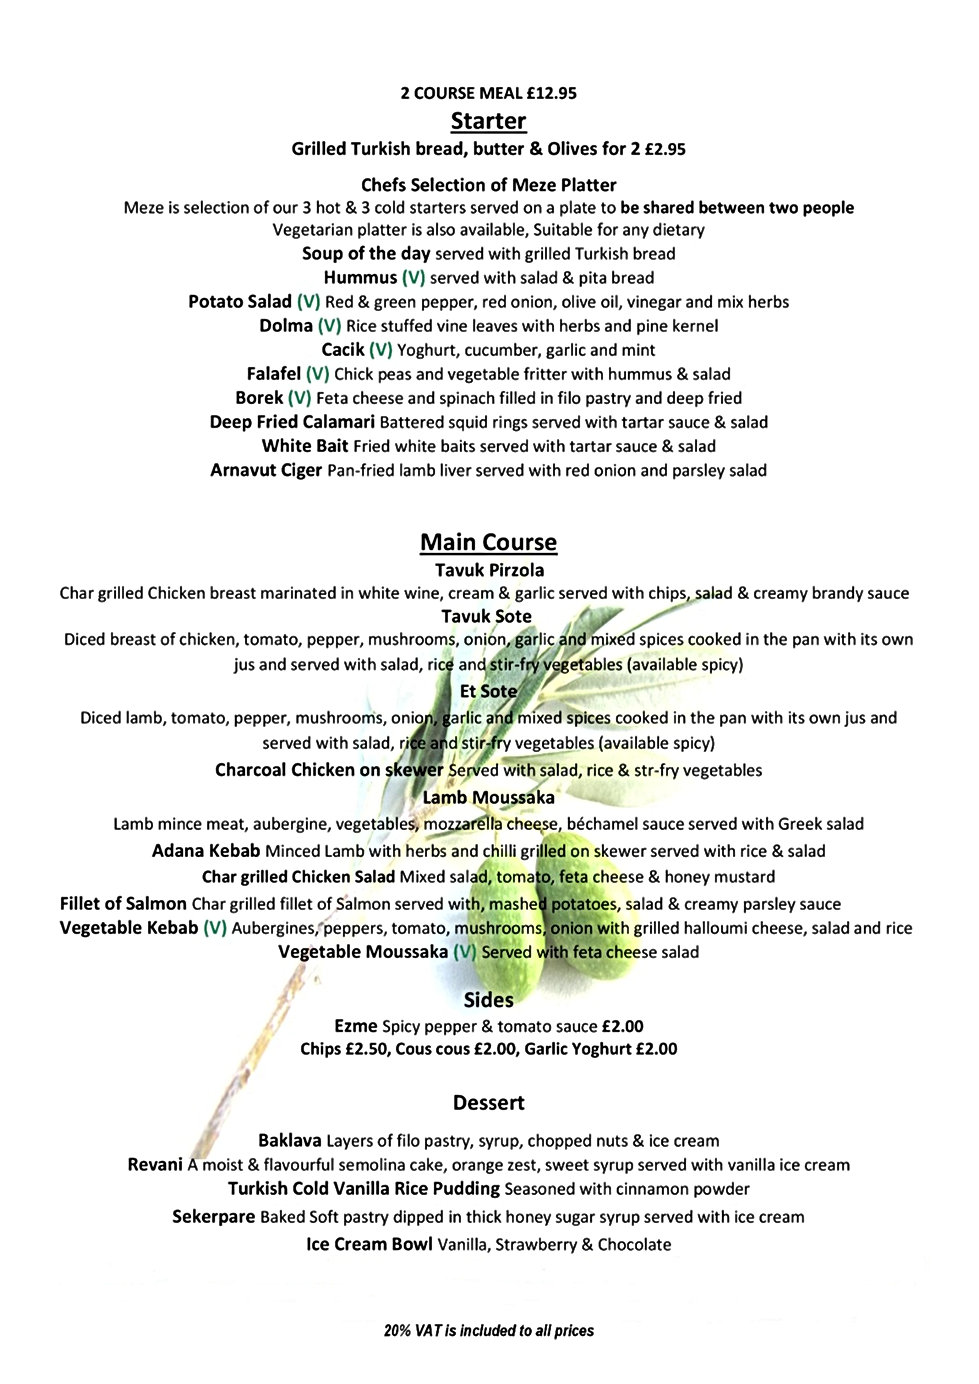 Green Olive Bridgwater Meal Deal Menu